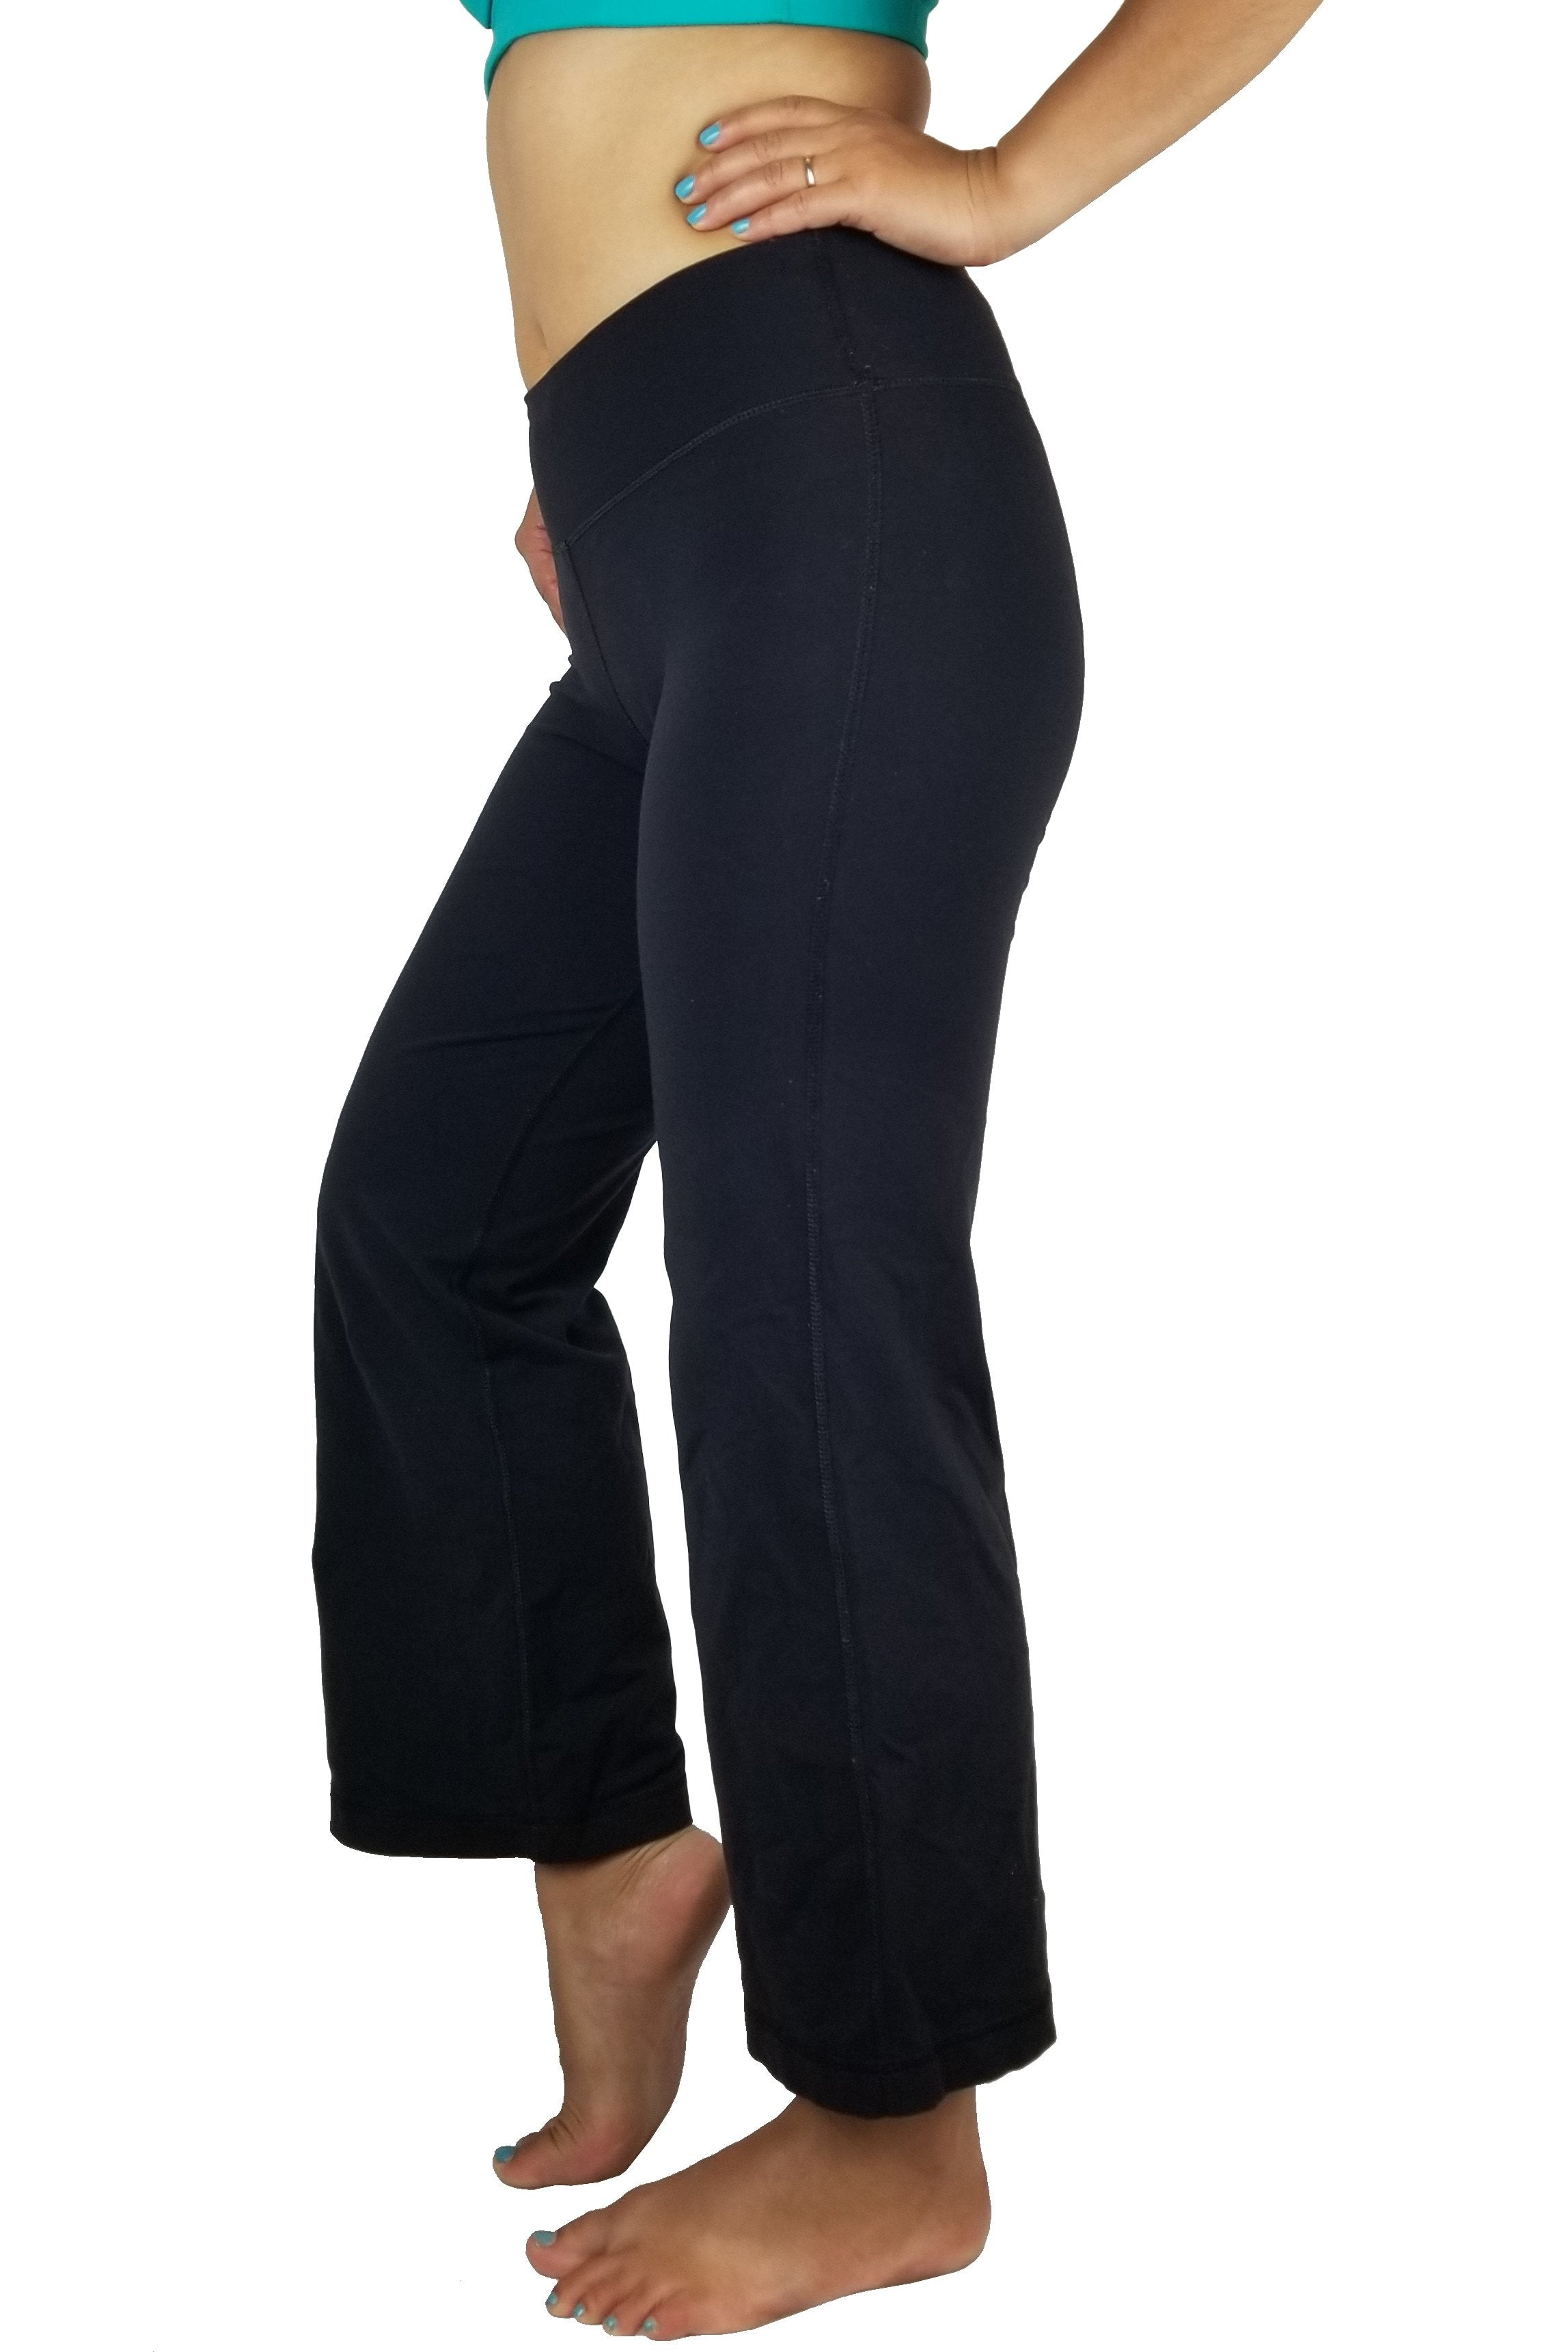 Lululemon flare yoga pants, Flare design for comfort and breathability. Less of a Vancouver street wear? Lululemon size 2. https://info.lululemon.com/help/size-chart, Black, Nylon, Lycra, and Spandex, Yoga, yoga pants, women's athletic wear, women's work out clothes, women's comfortable pants, fitness, fit